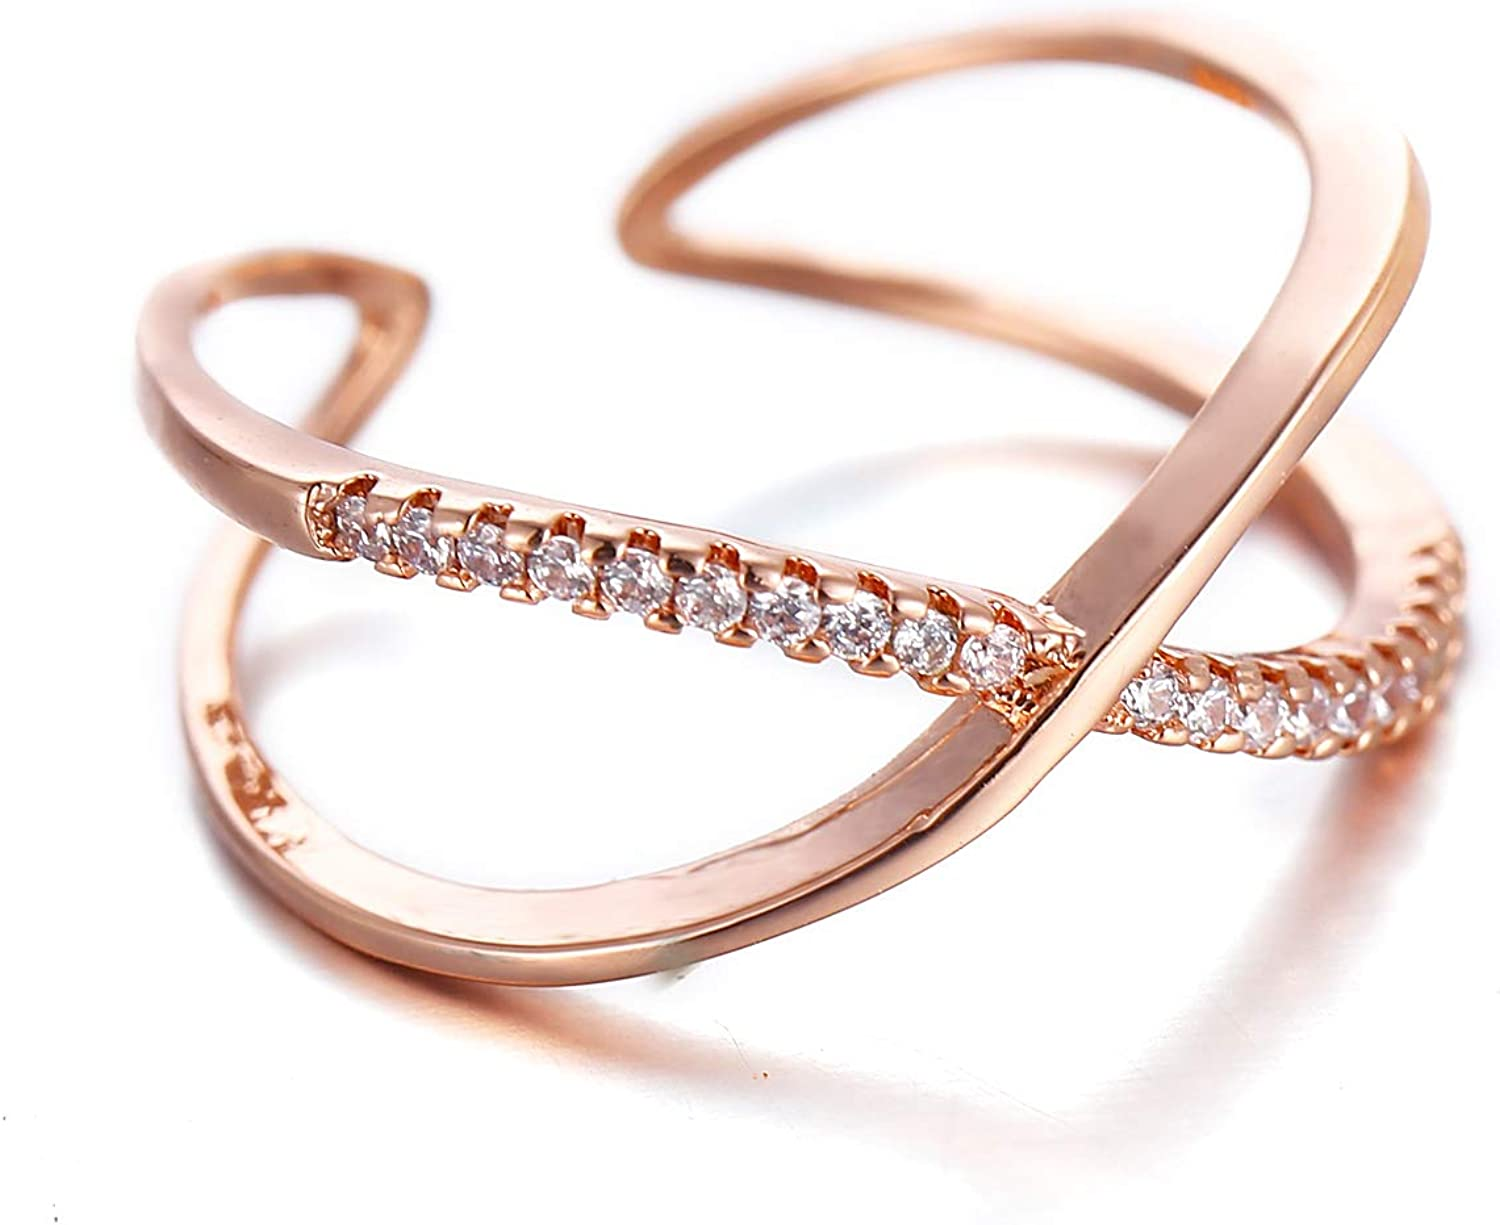 Cubic Zirconia Infinity Symbol Ring CZ Forever Endless Love Promise Band Ring Eternity Friendship Band Silver for Women Girls